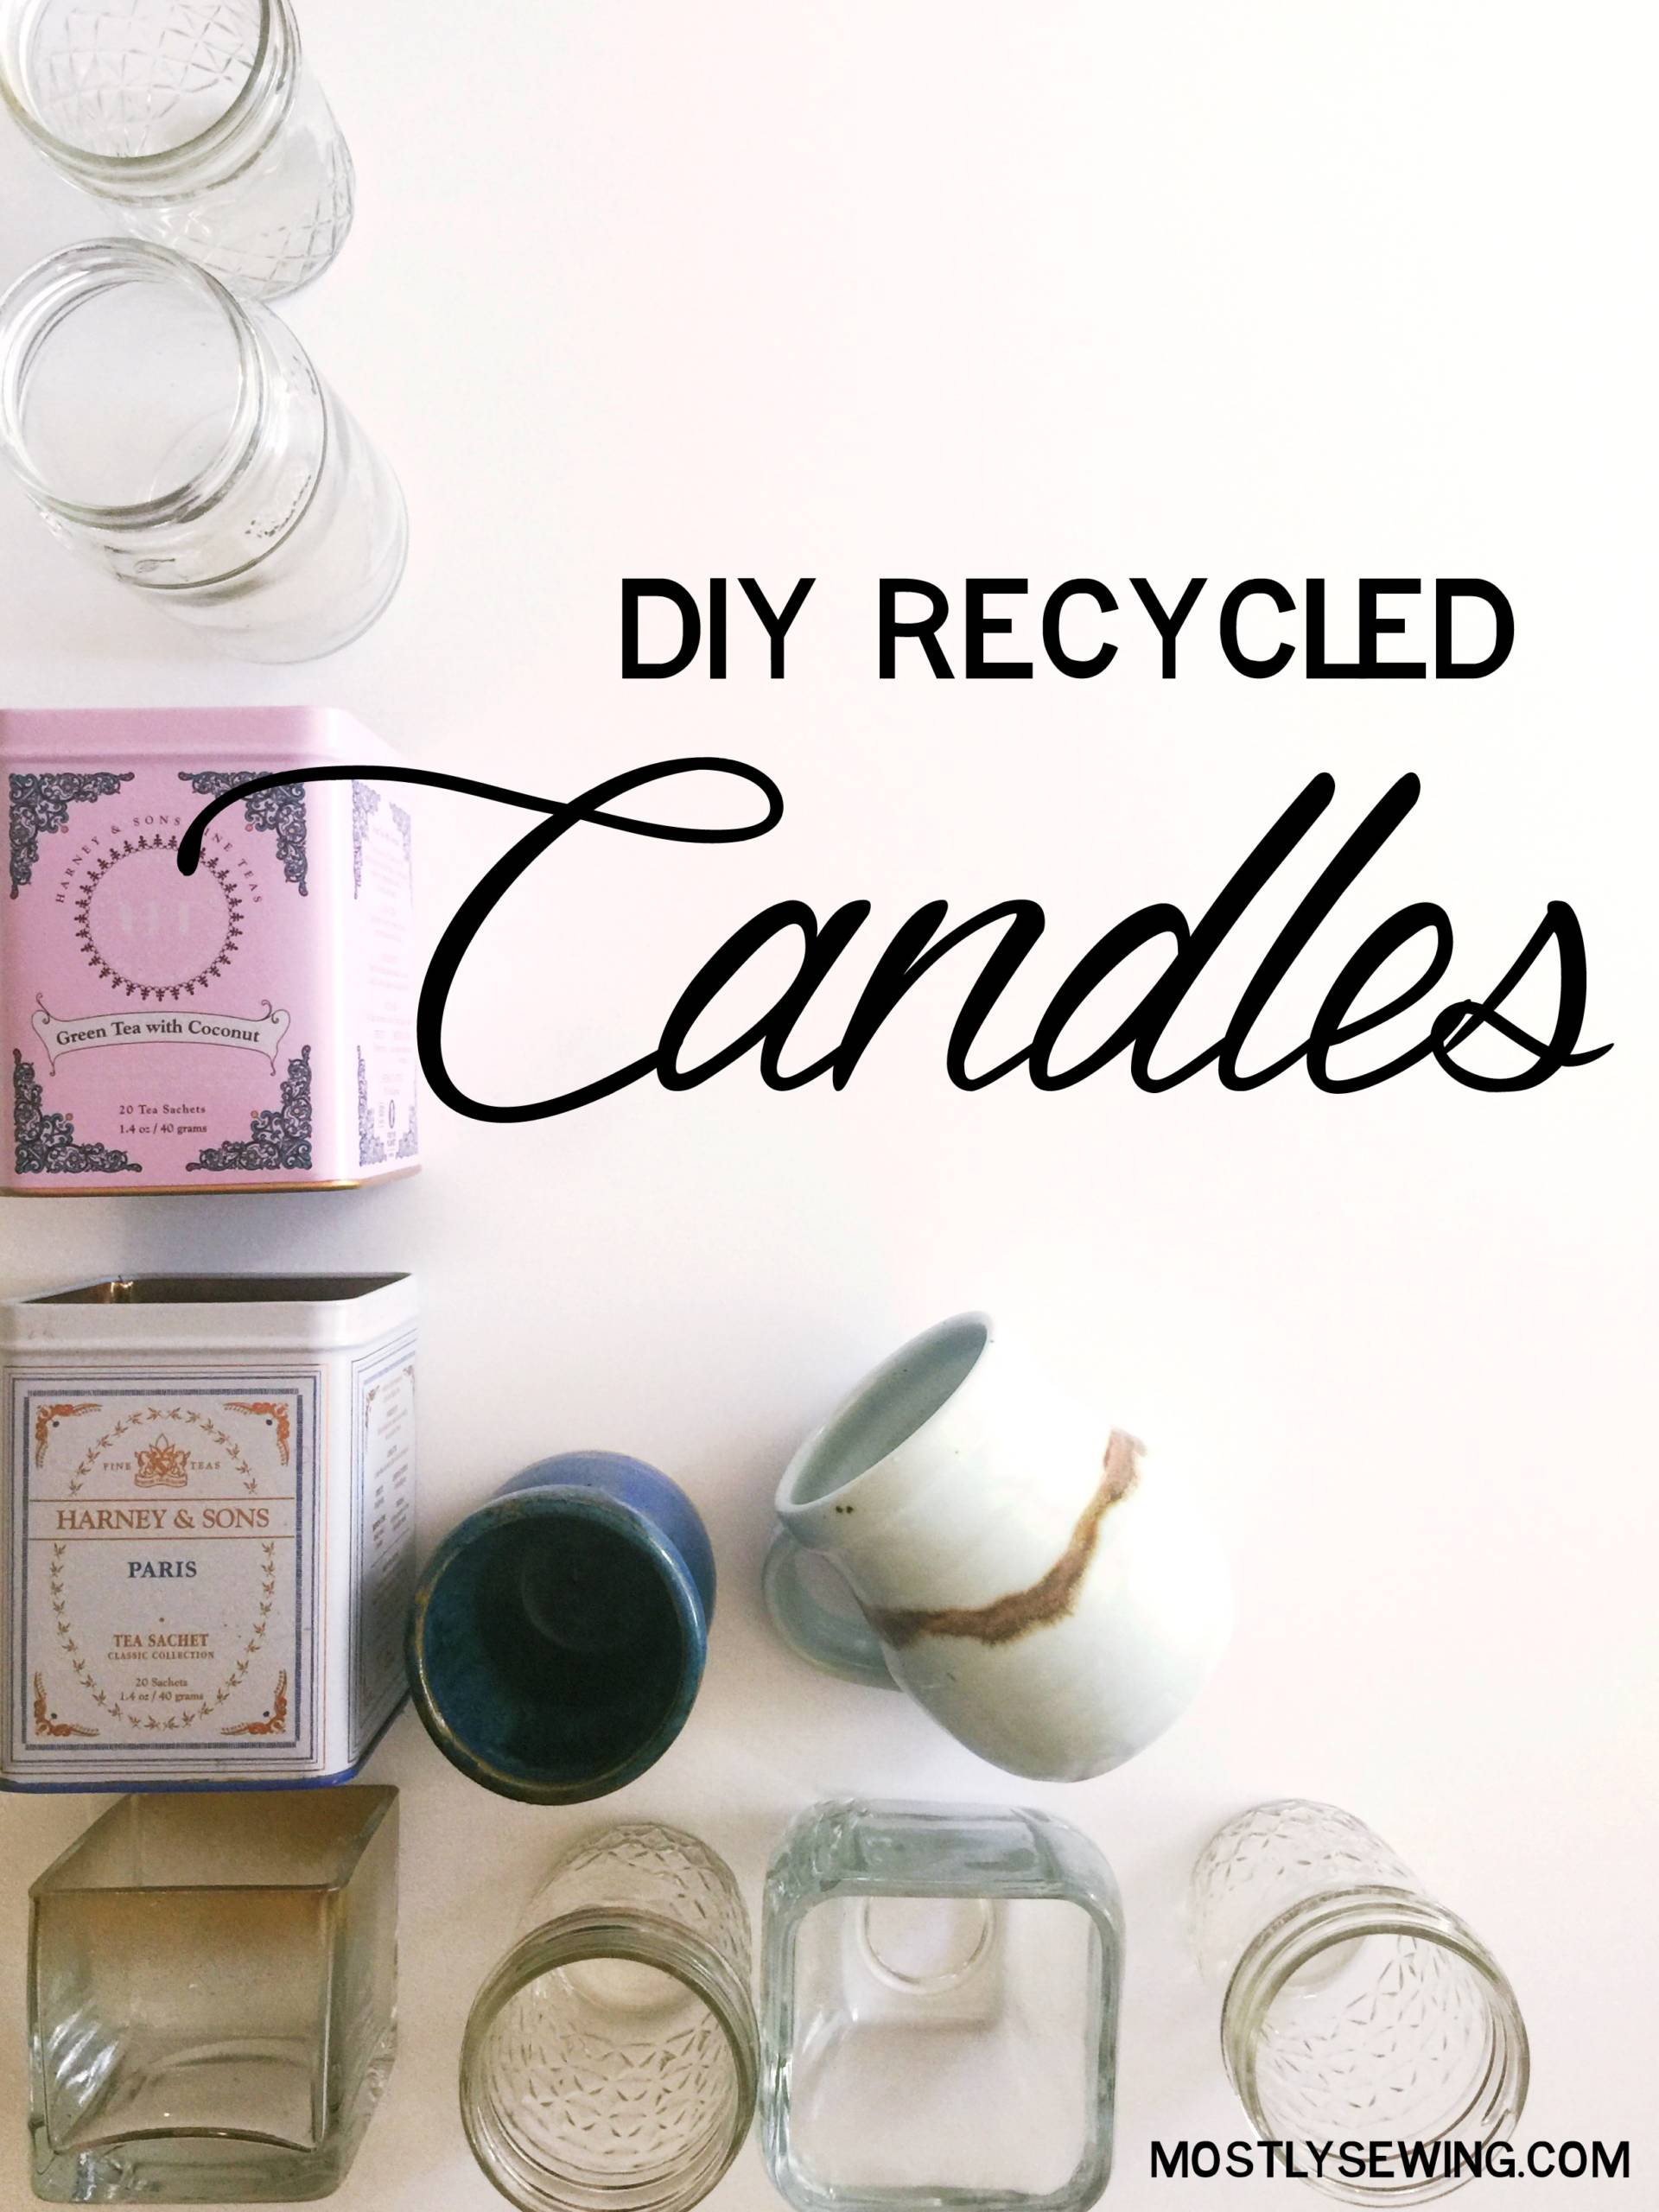 DIY Recycled Candle Tutorial: Use old containers from around your house and melt down some old candles